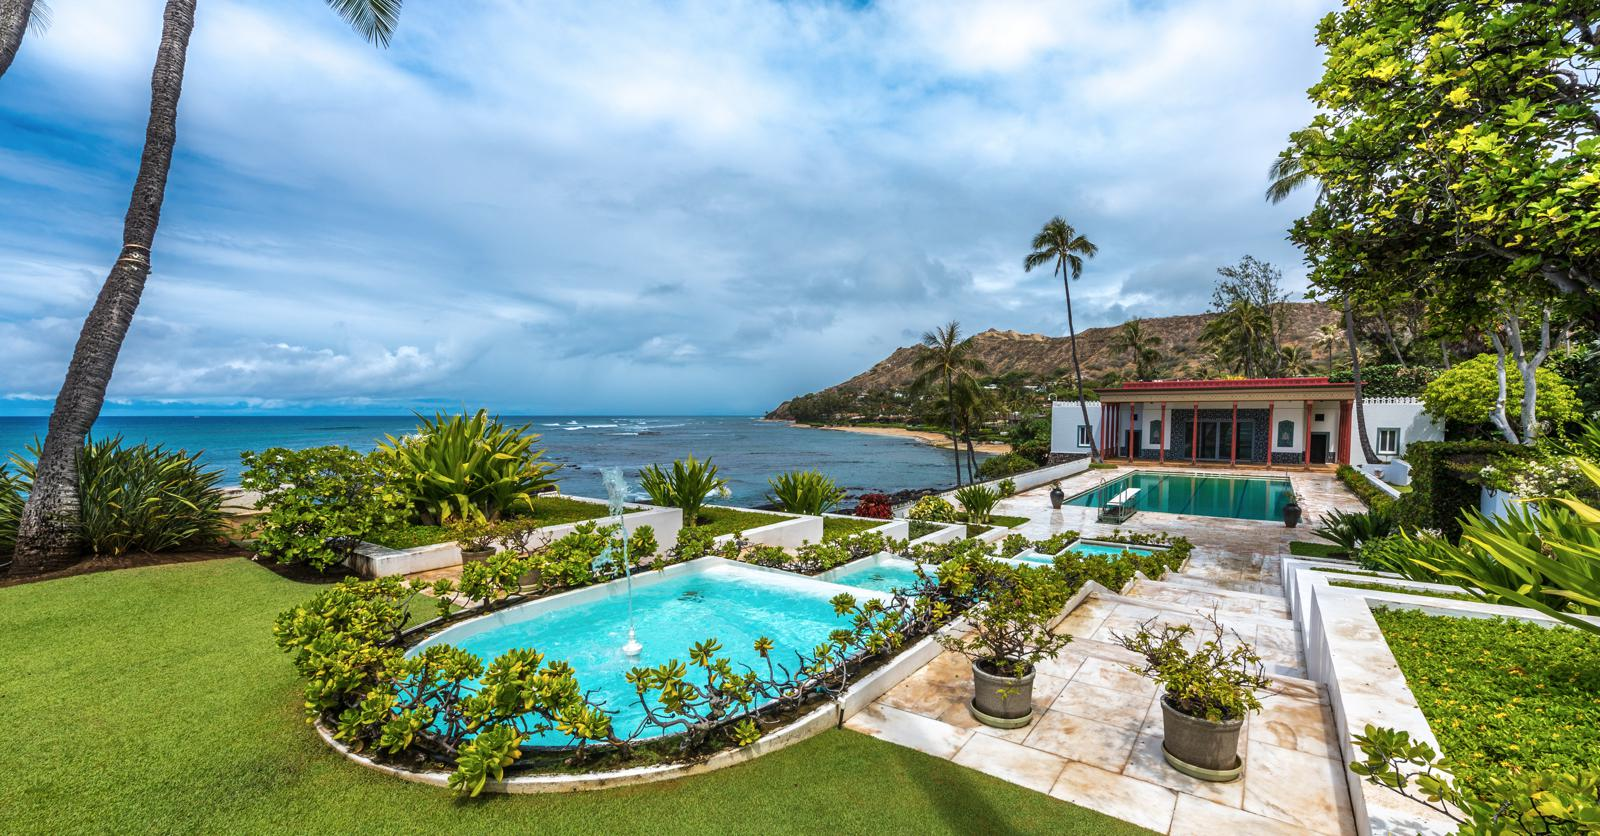 The Famous Hawaiian Mansion That's a Work of Art